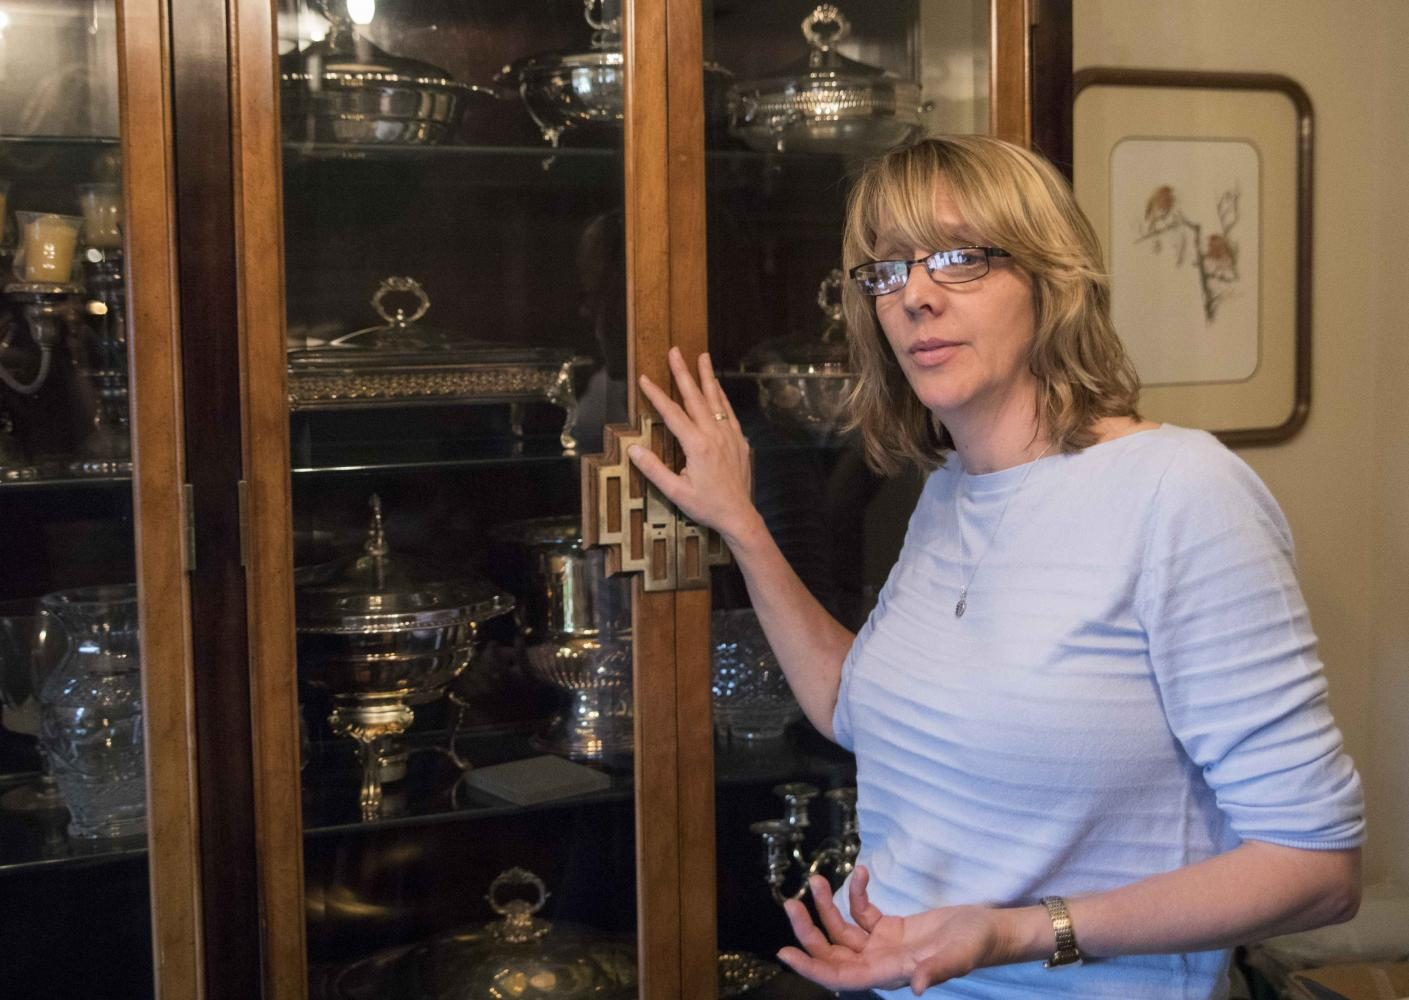 Elizabeth Beugelsdyk closes a cupboard after looking at the silver in an estate sale she is running for the business she owns with her cousin called L&L Family Estate Sales.